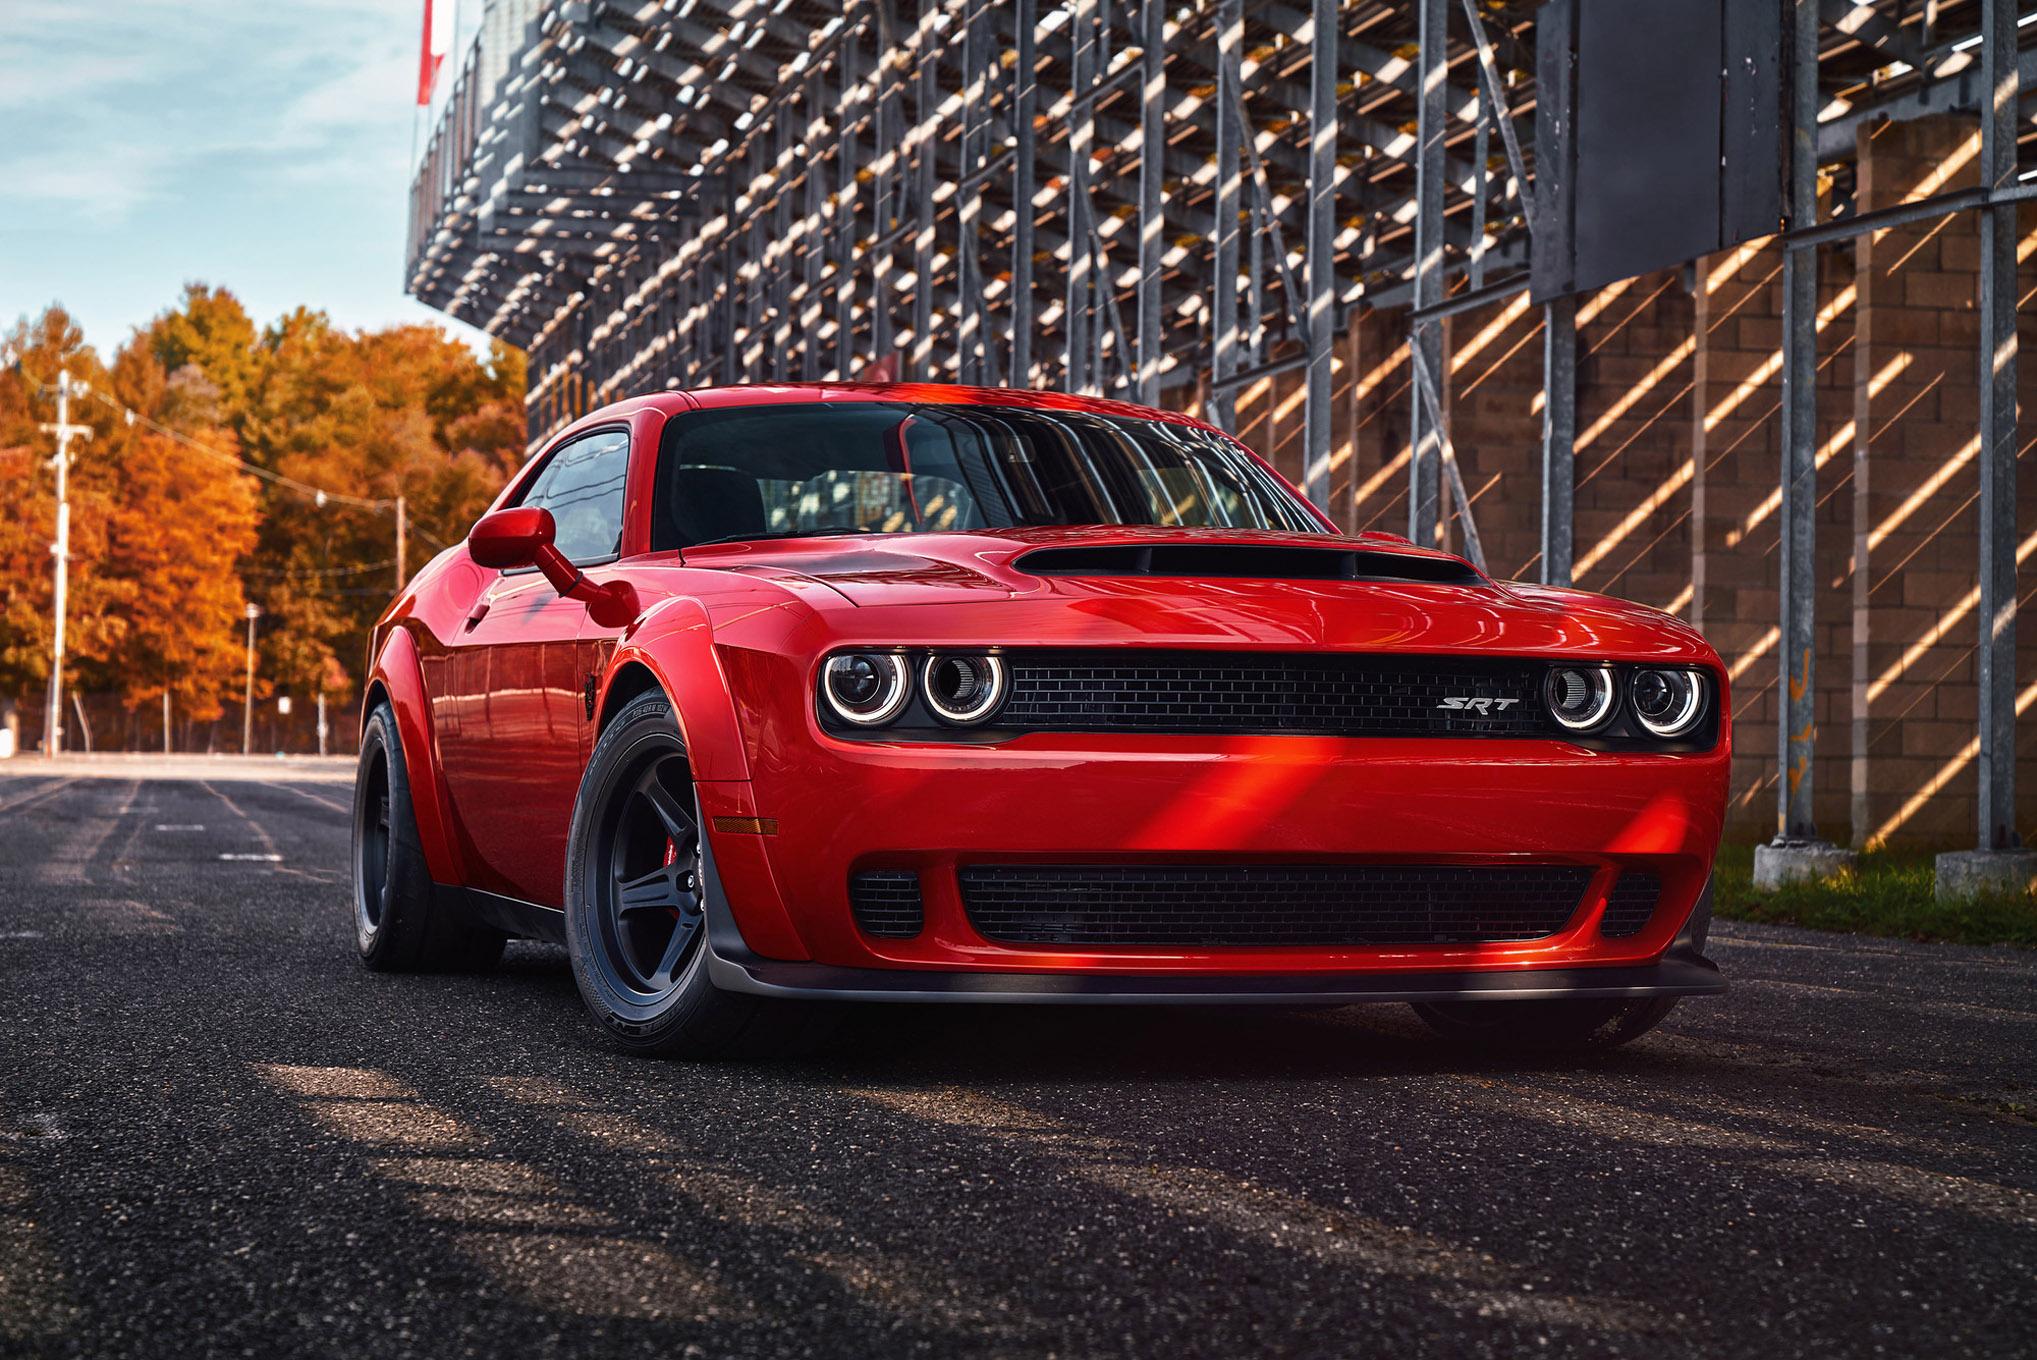 52 Dodge Challenger SRT HD Wallpapers Background Images 2037x1360